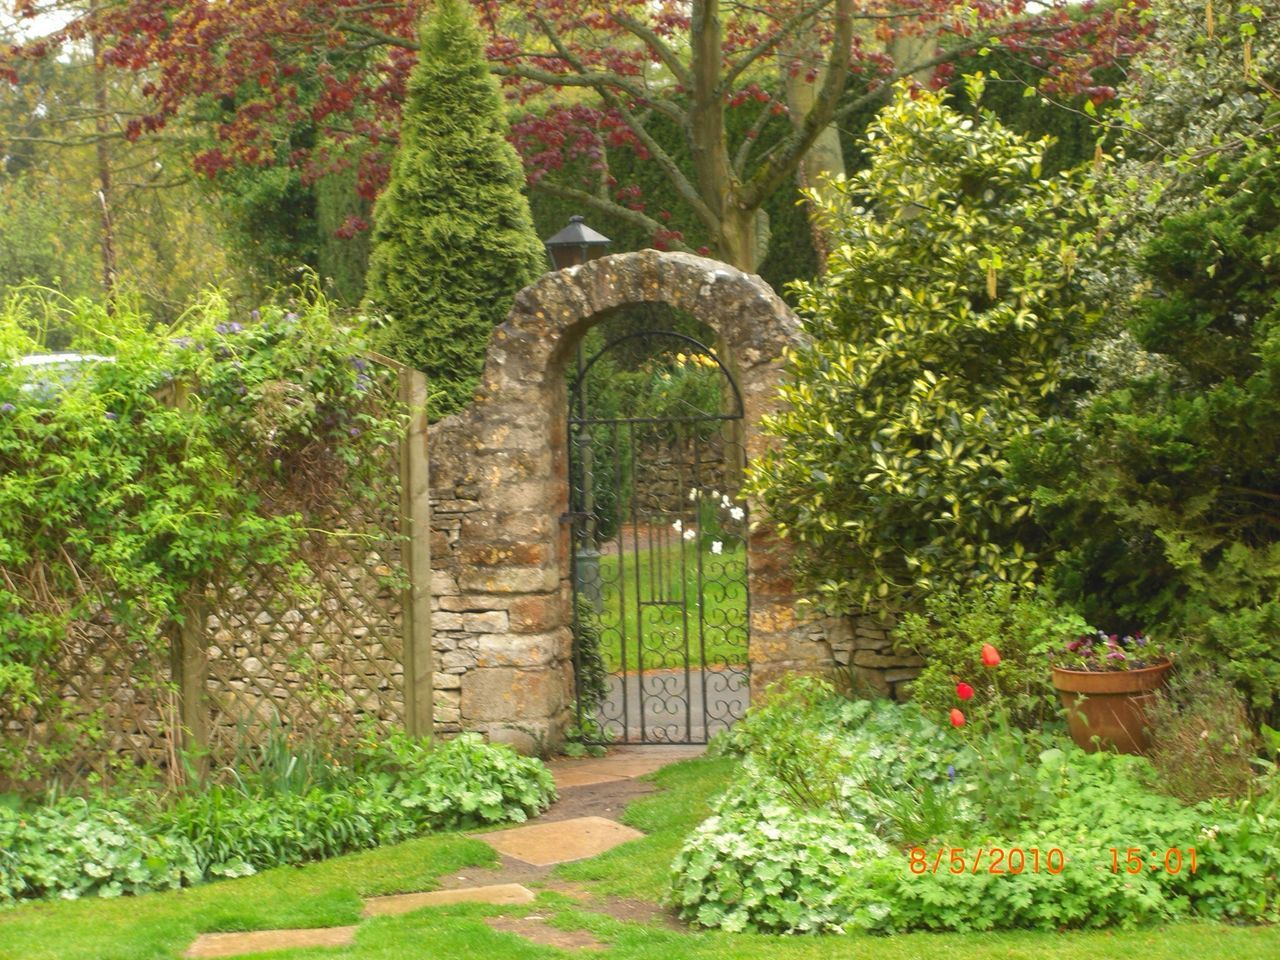 plant, arch, growth, flower, tree, flowerbed, outdoors, day, nature, no people, architecture